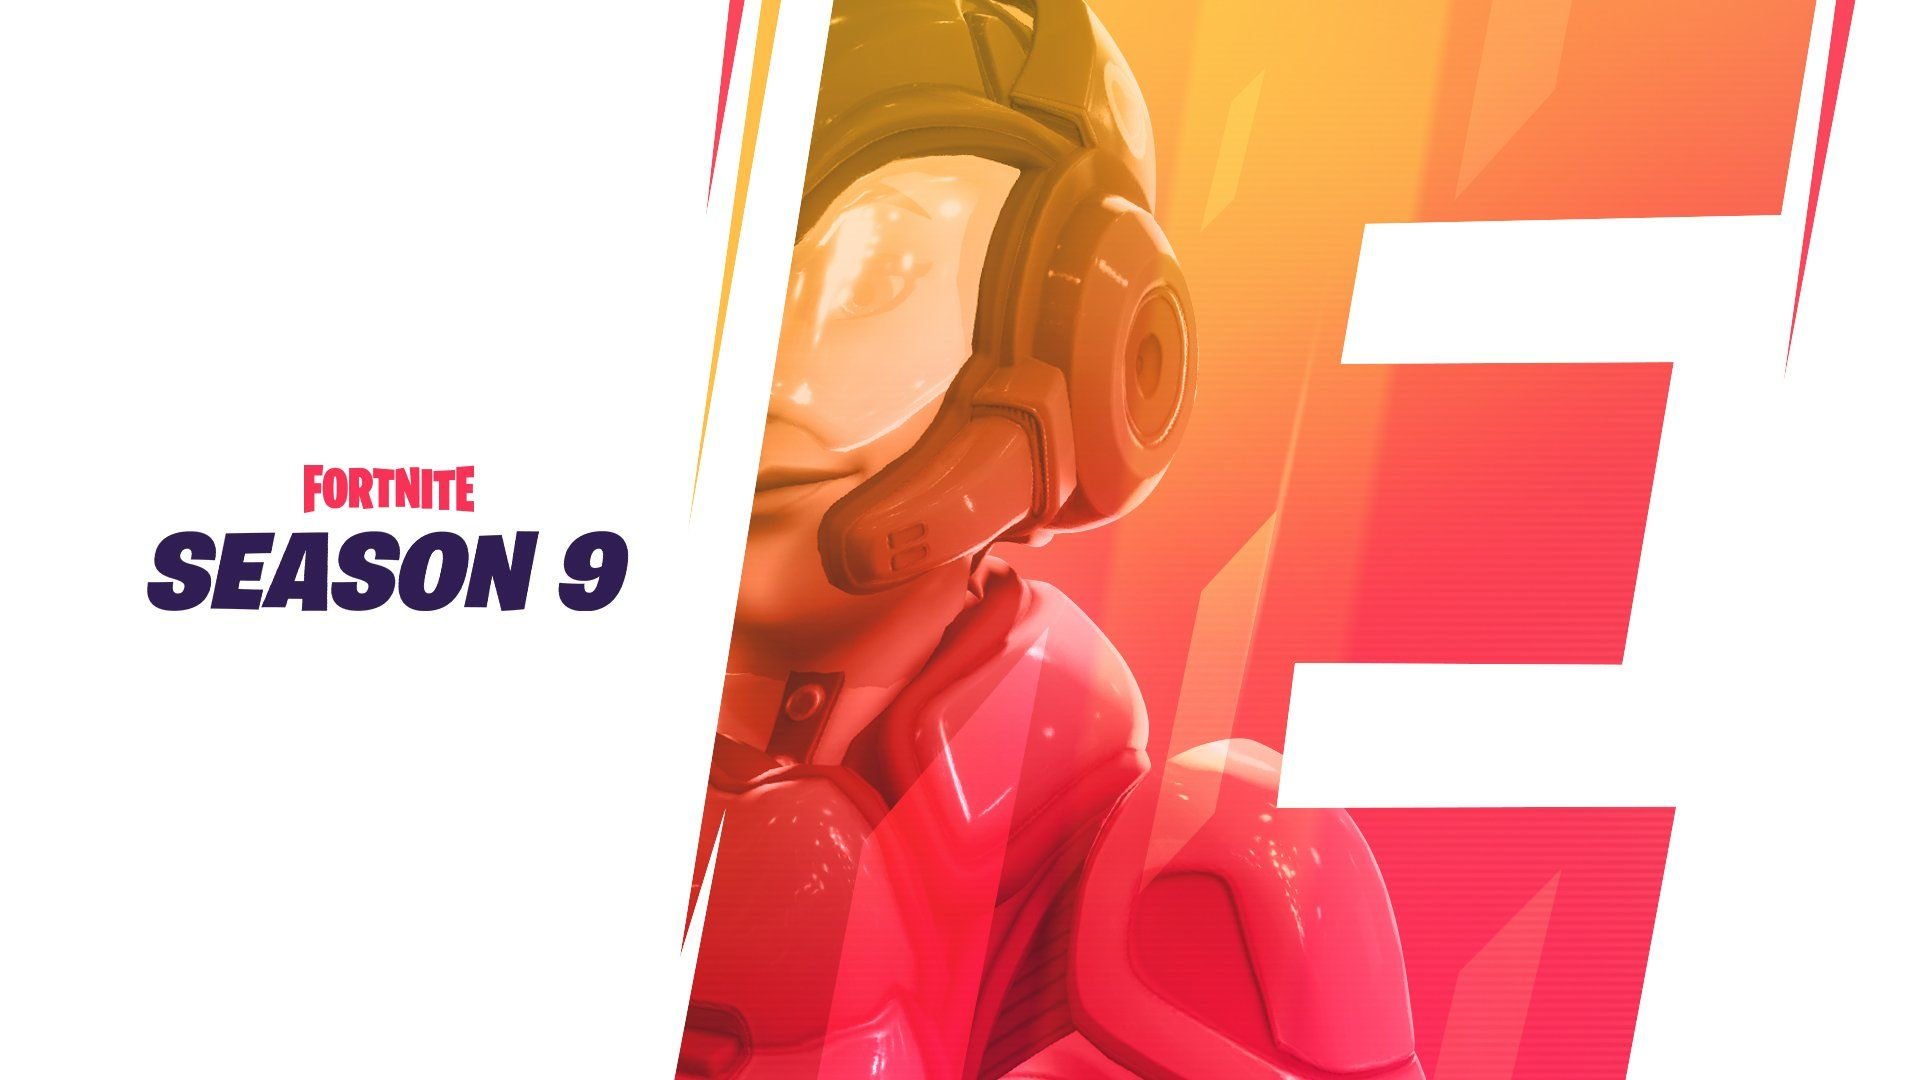 Fortnite Season 9 Teaser 2 Offers Second Look At Bright Future Skins